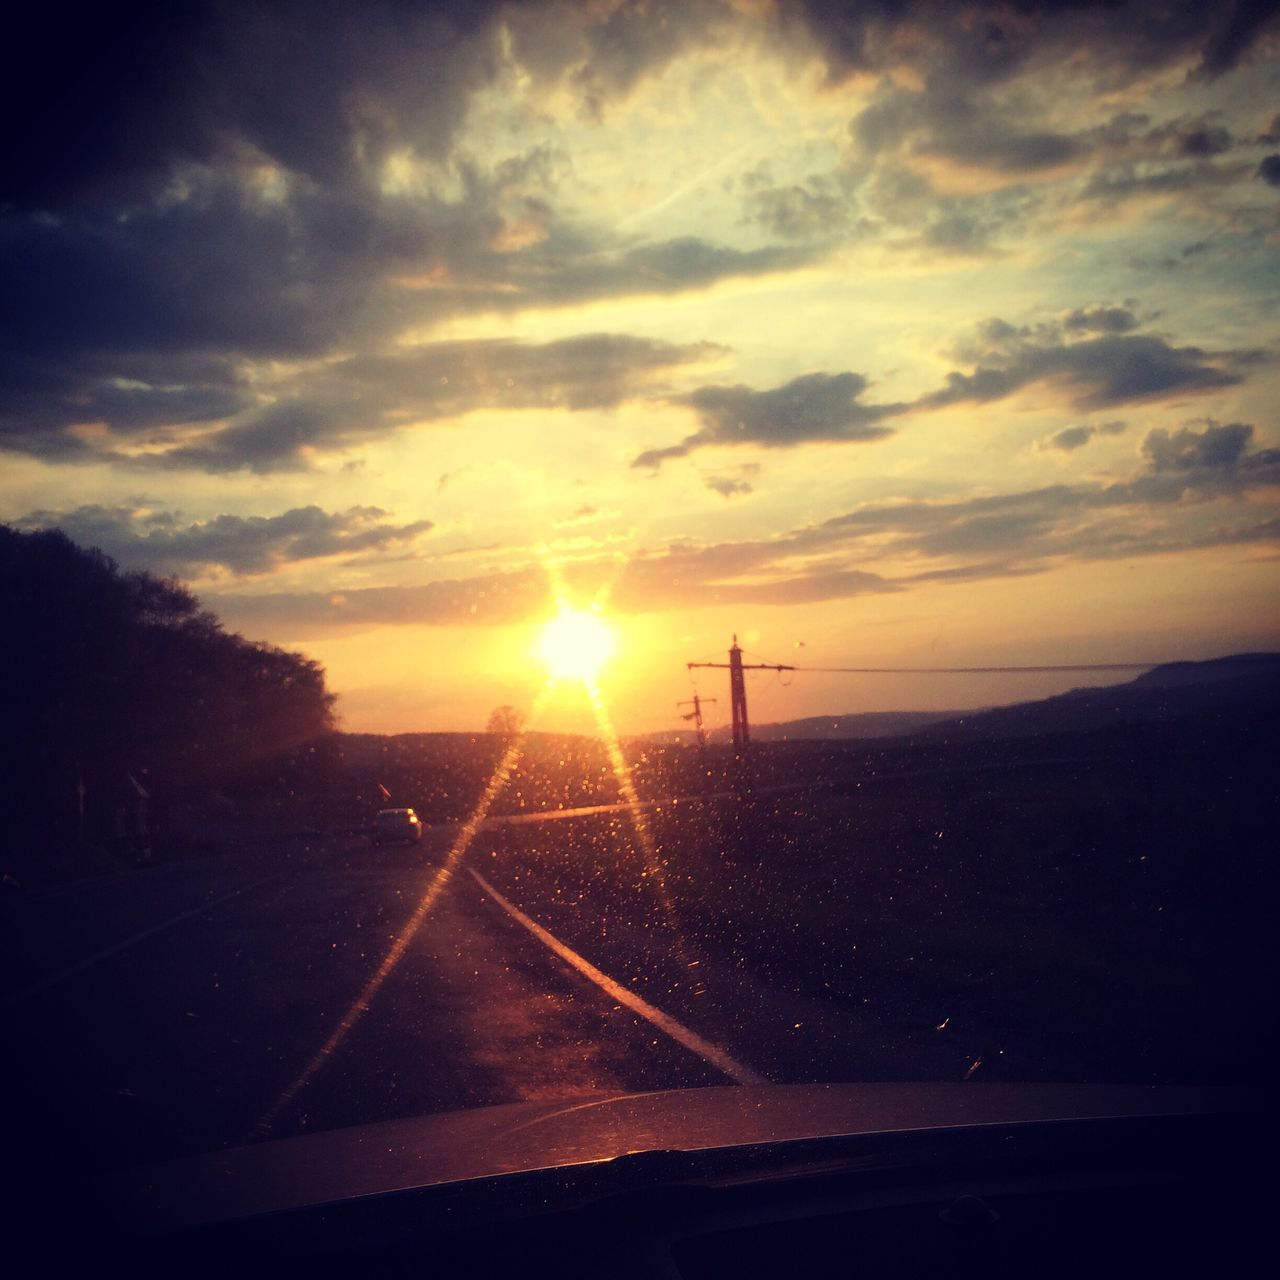 sunset, transportation, road, sky, no people, sun, car, scenics, nature, beauty in nature, cloud - sky, tranquil scene, silhouette, landscape, outdoors, tree, day